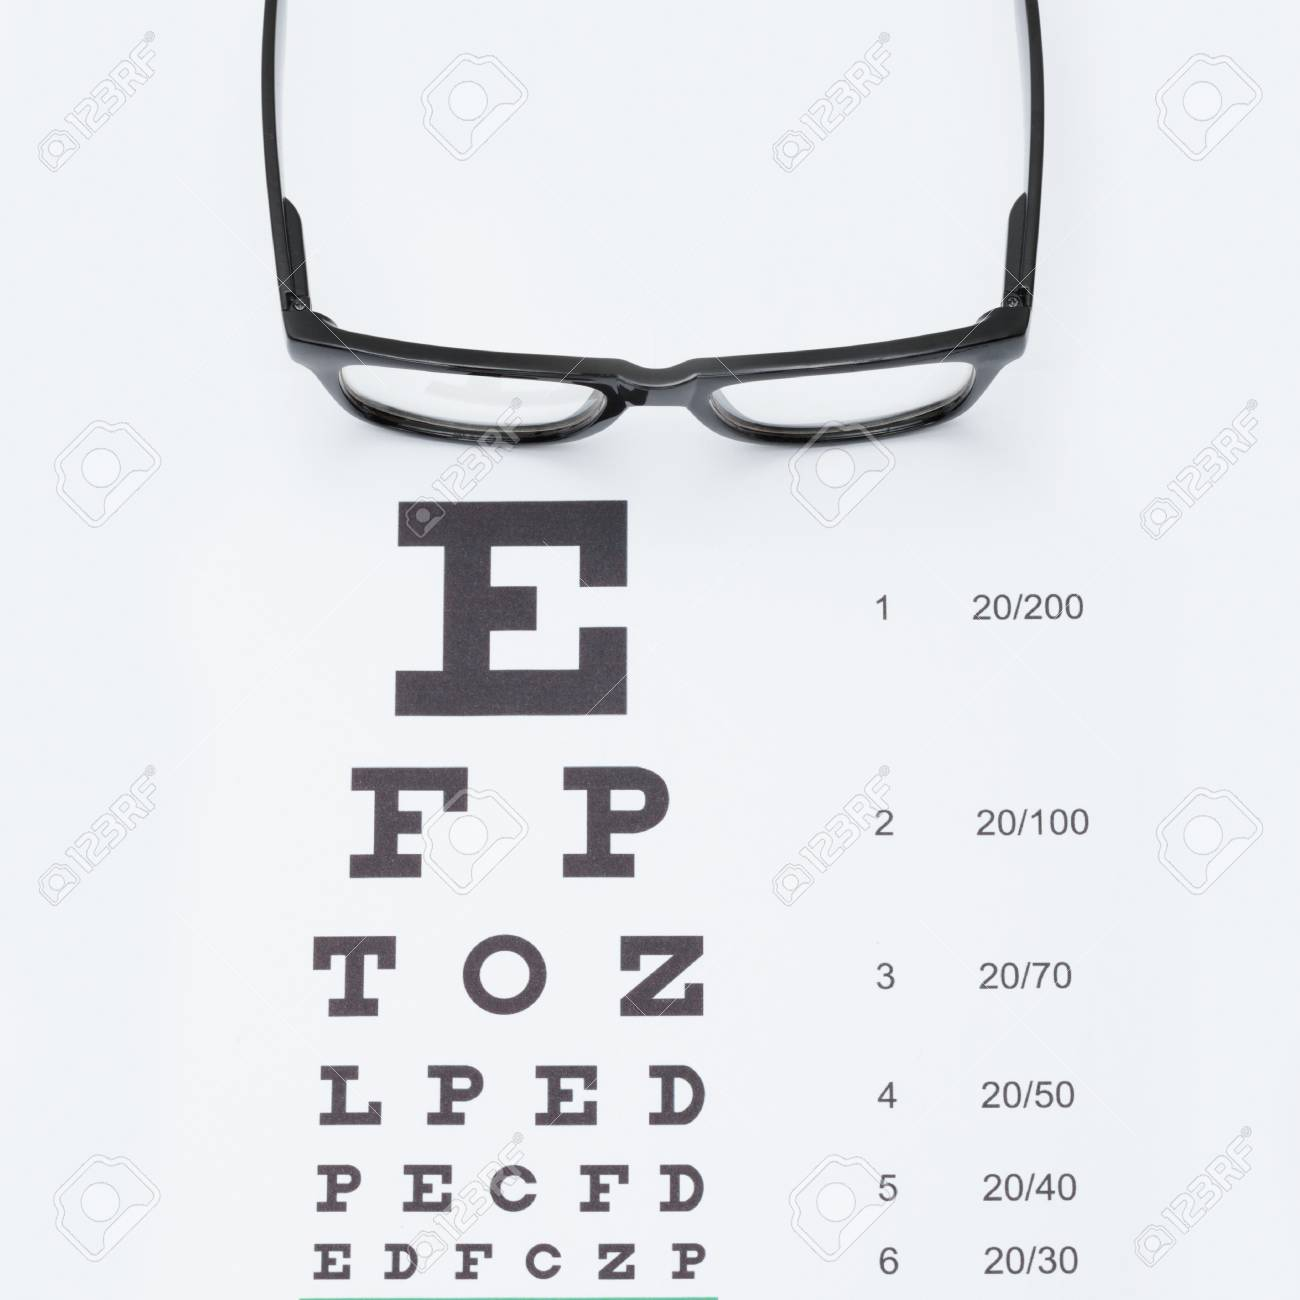 Eyesight test chart with glasses - studio shot - 1 to 1 ratio Stock Photo -